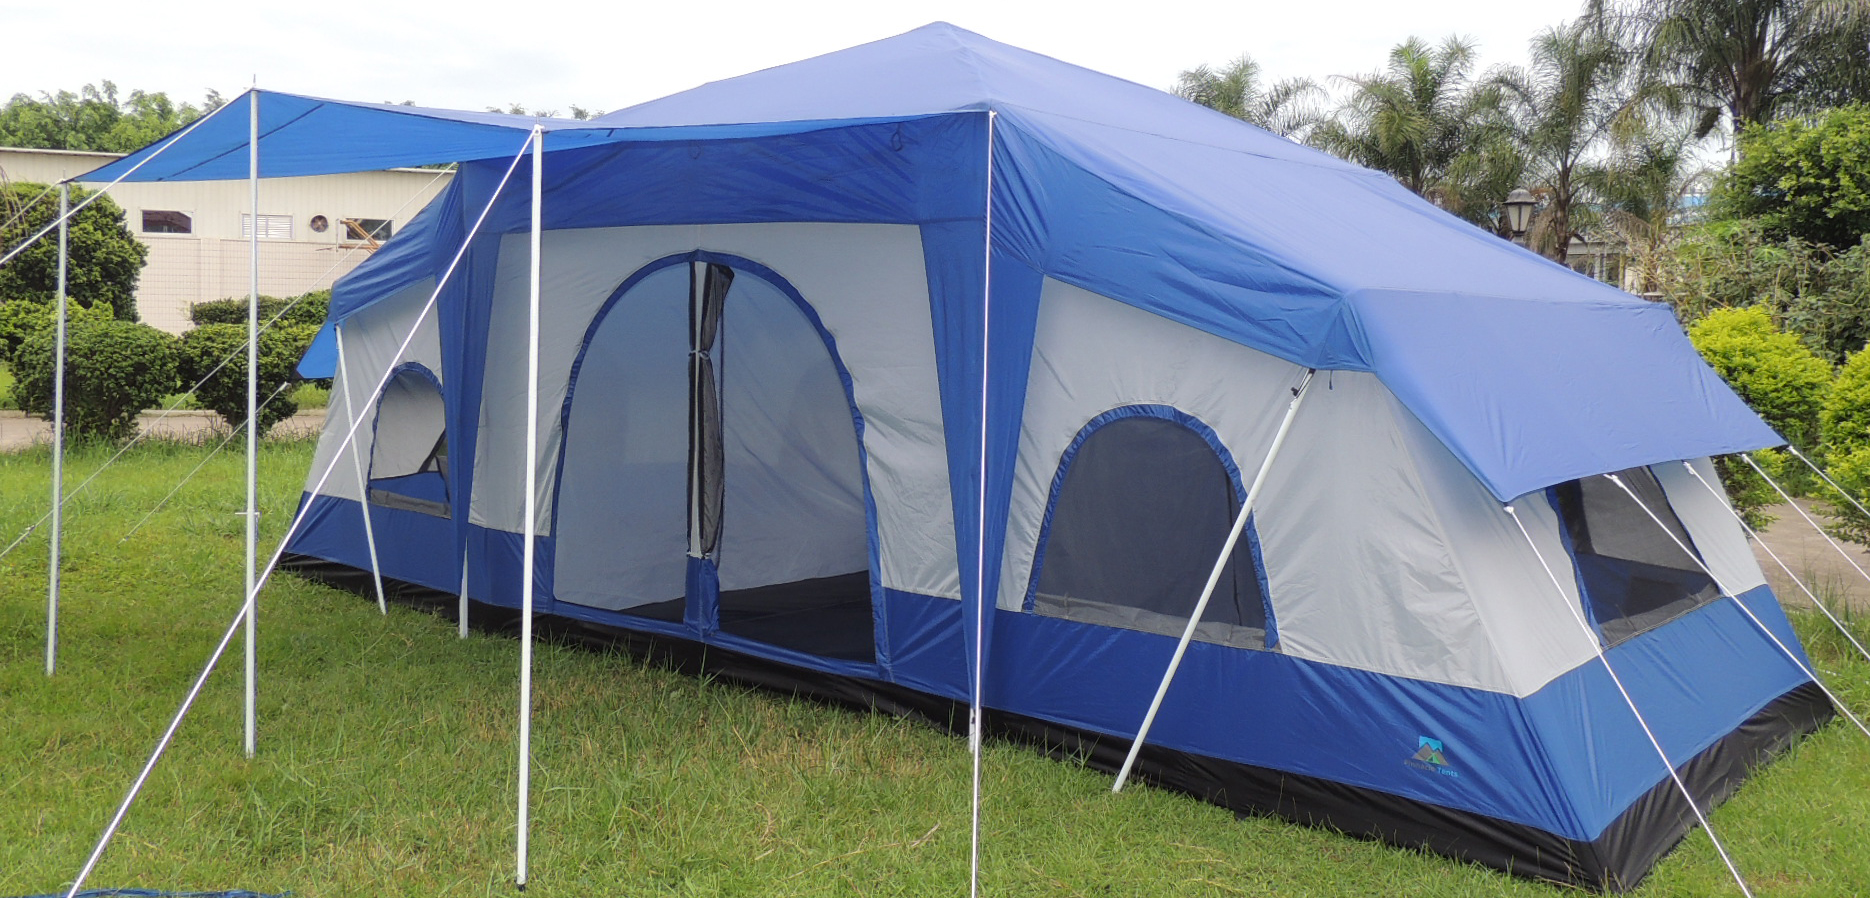 Cabin Tent - 4 Room : best cabin tents for families - memphite.com